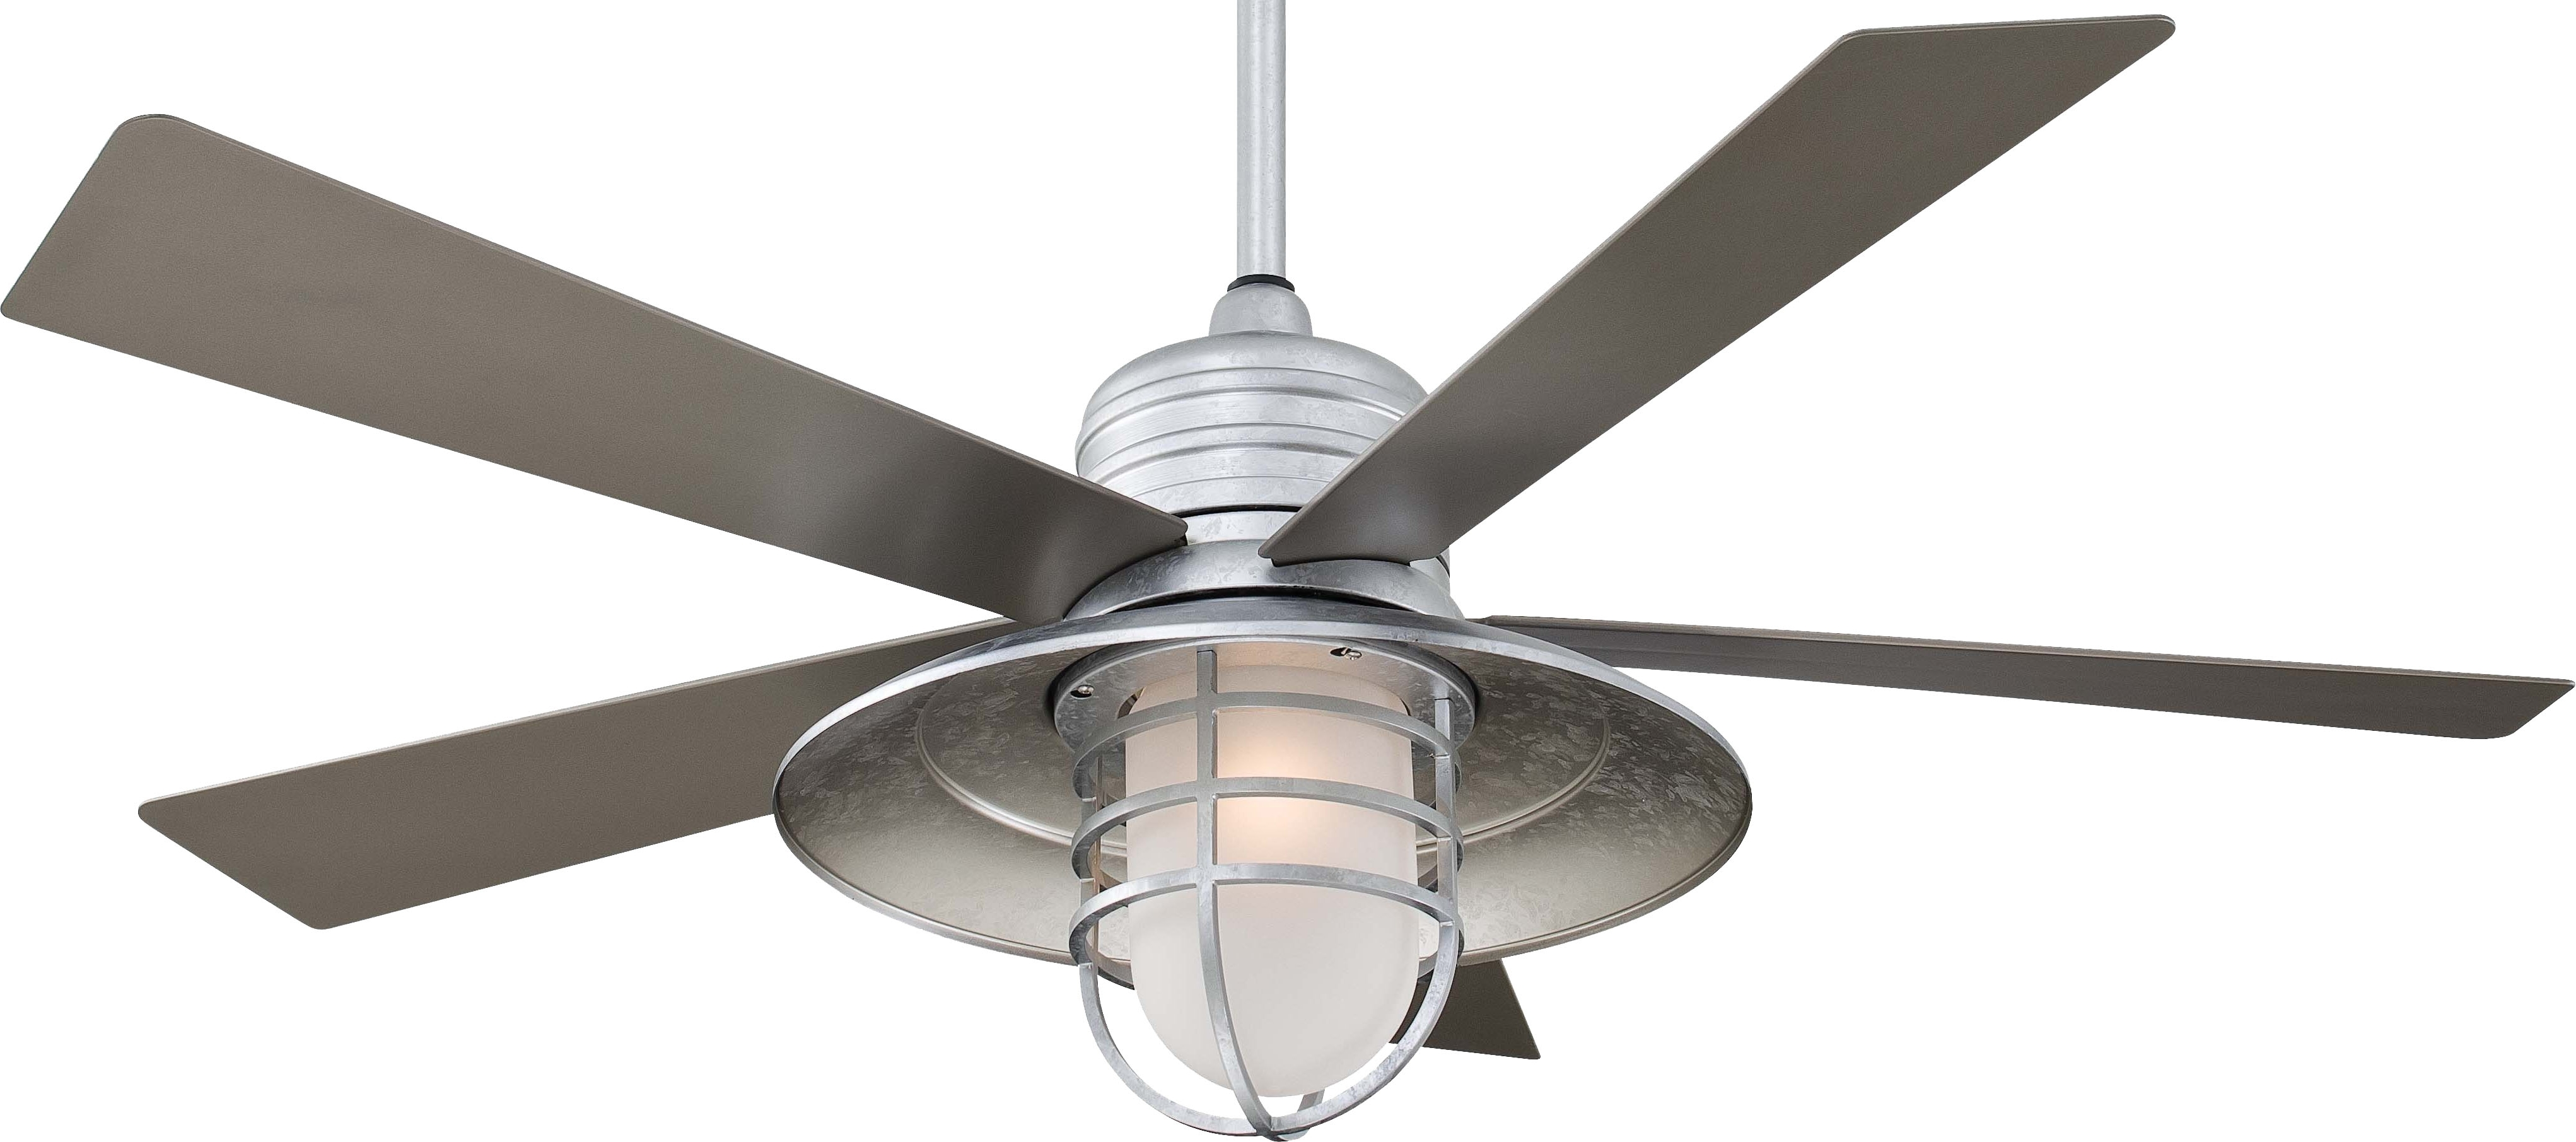 Favorite Outdoor Ceiling Fans With Galvanized Blades With Regard To Mid Century Galvanized Ceiling Fan Light Kit Modern Tray Definition (View 6 of 20)